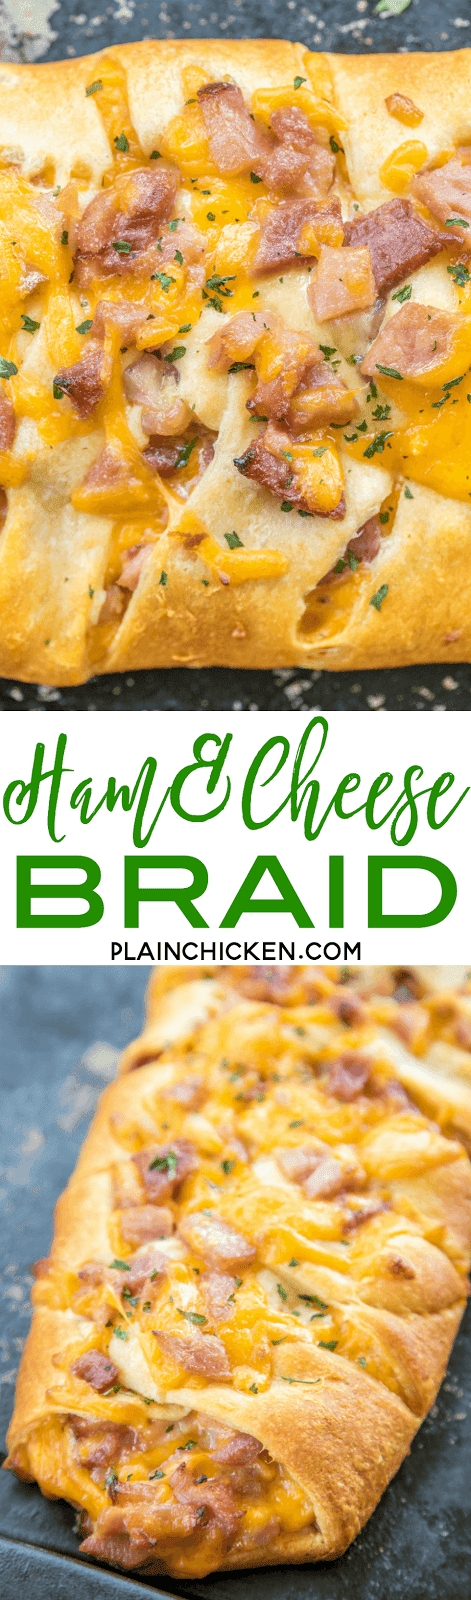 Ham & Cheese Braid - only 4 ingredients! Great way to use up leftover holiday ham. Ready in under 30 minutes. Everyone LOVES this easy stuffed bread recipe!!